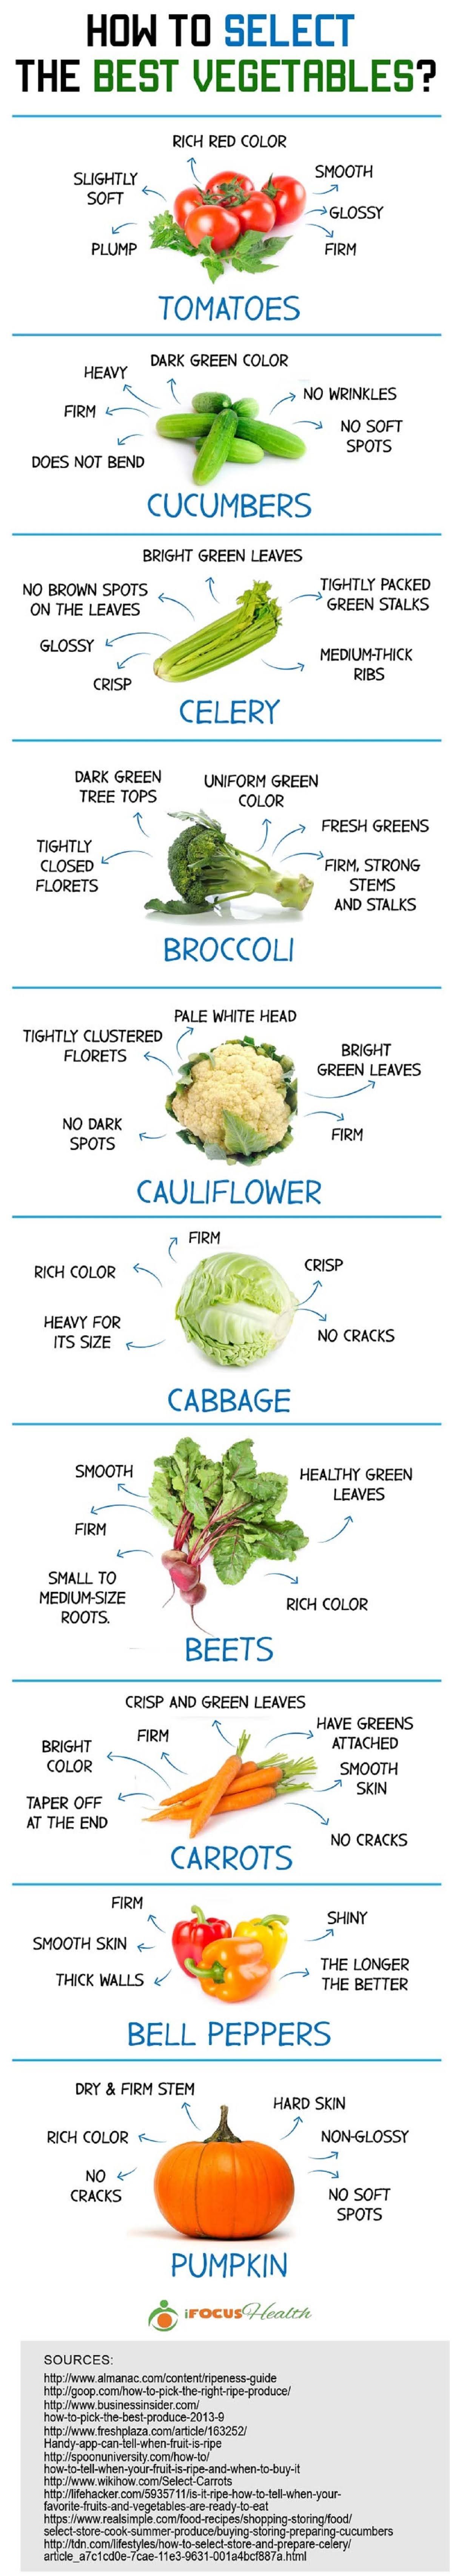 how-to-select-and-store-the-best-produce-for-juicing-infographic